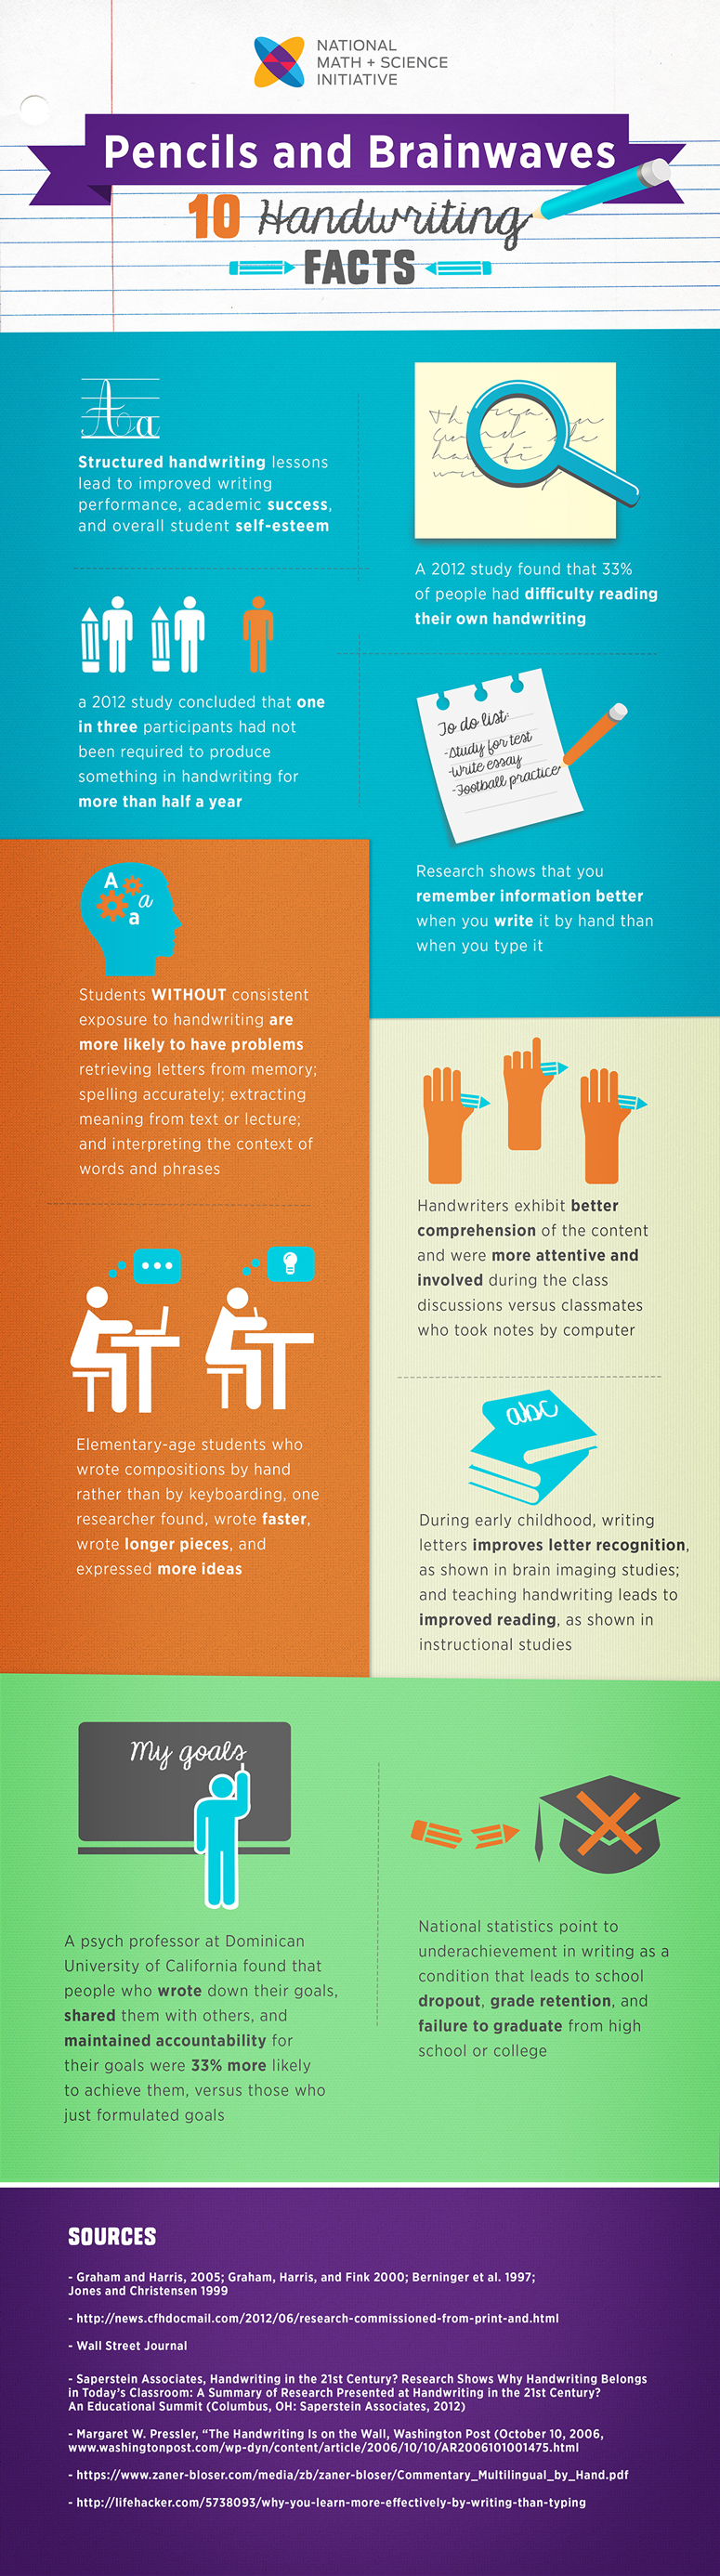 Why-Handwriting-is-Important-for-Learning-Infographic